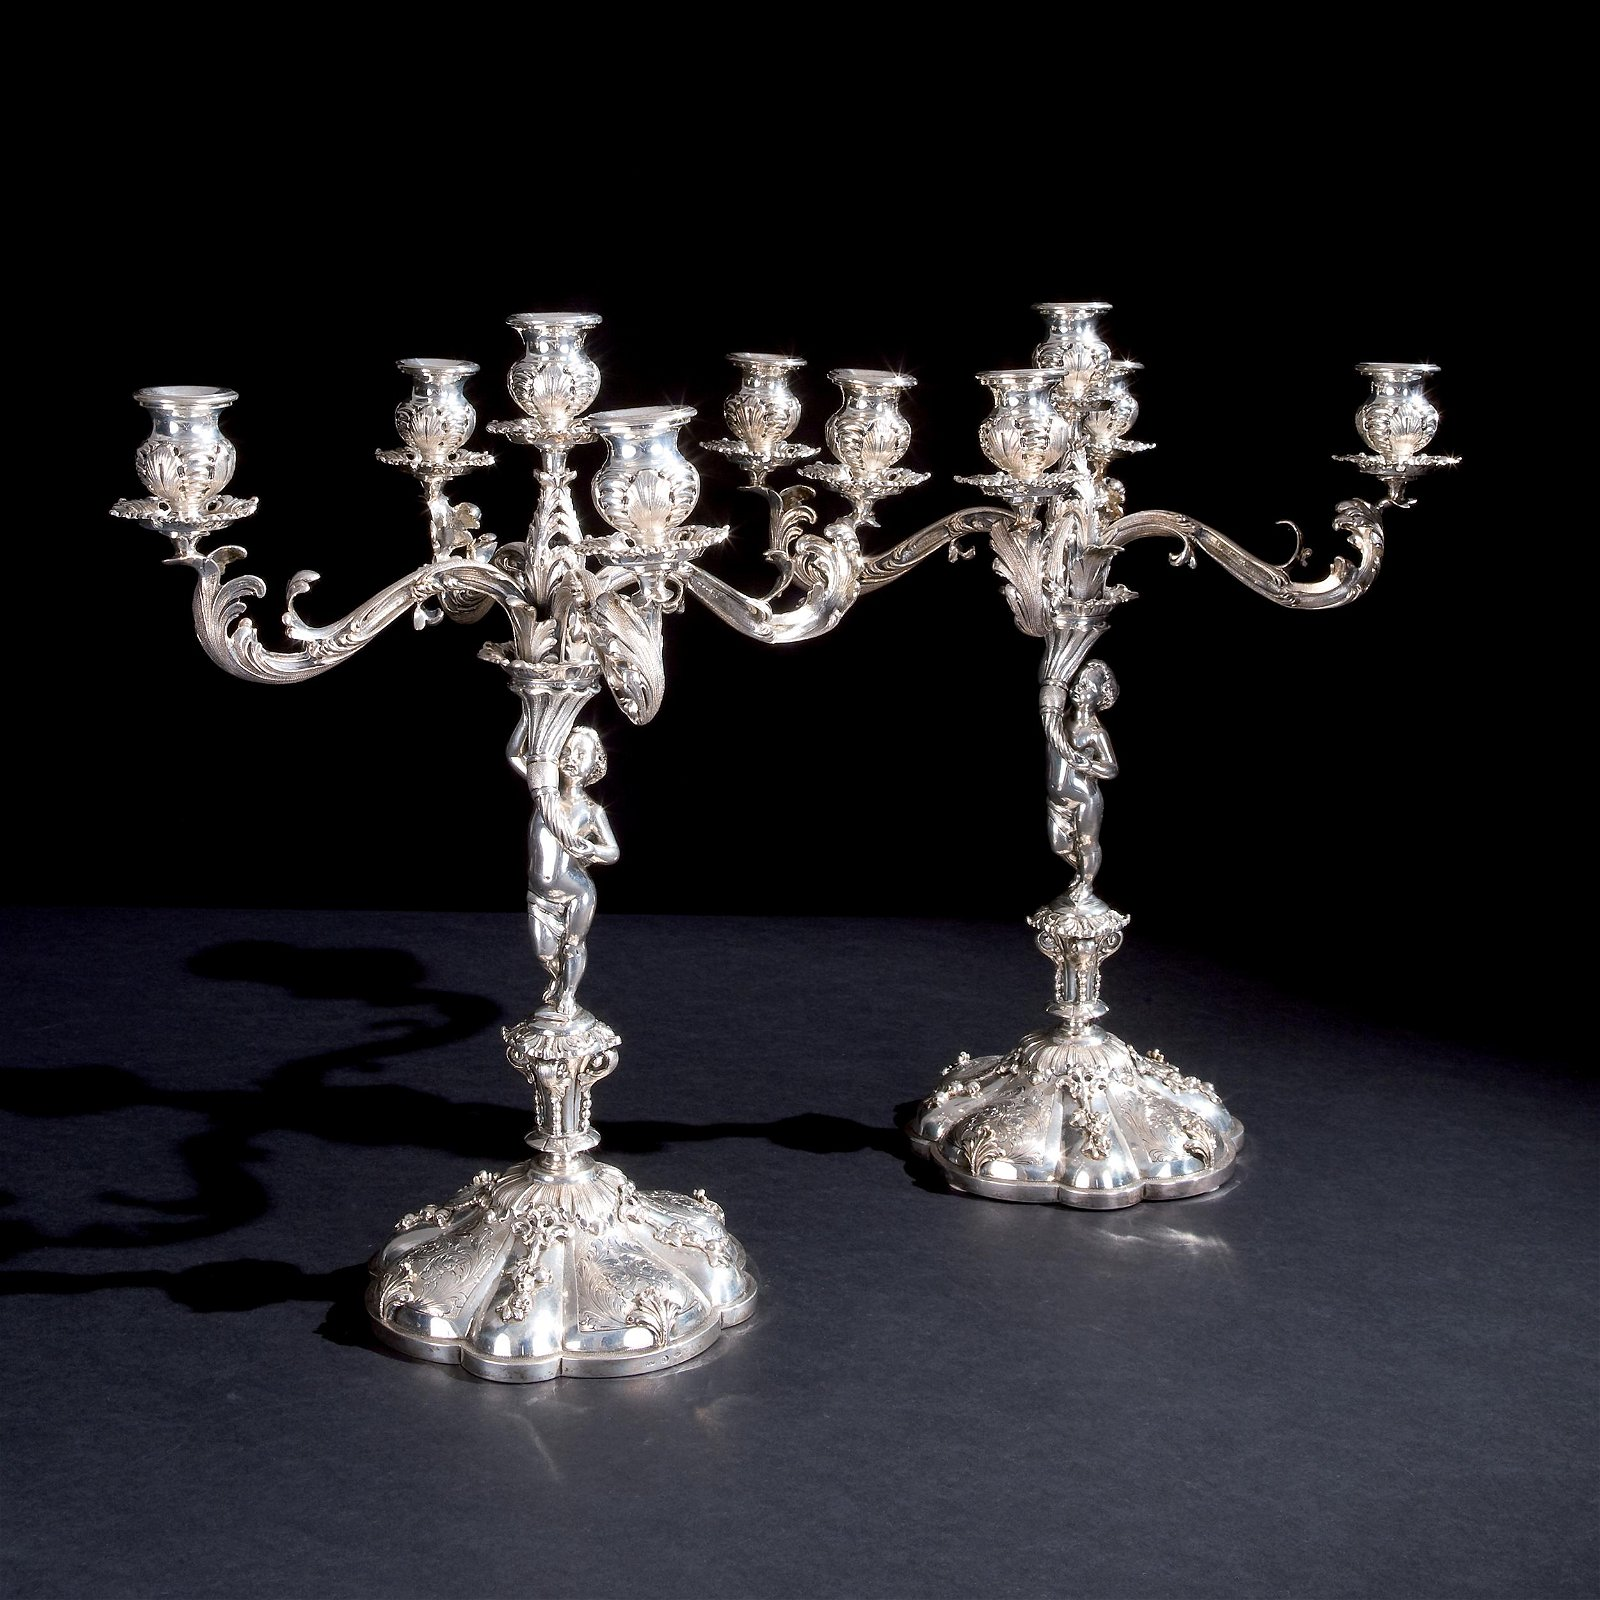 A pair of silver five-light candelabra